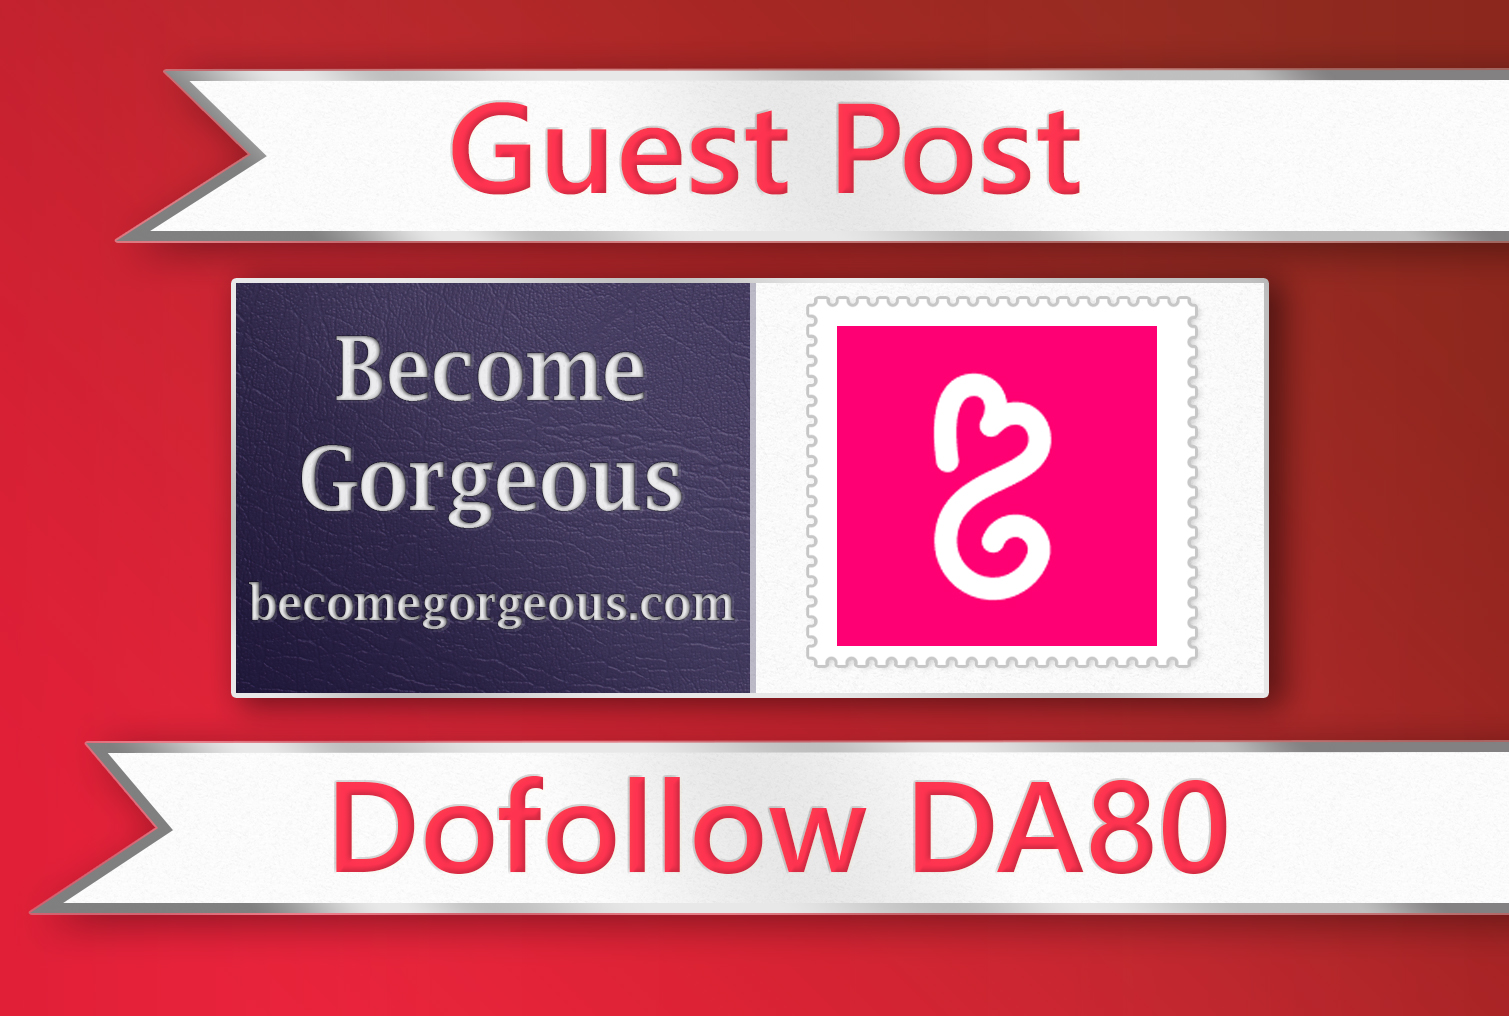 Guest post on BecomeGorgeous - DA80